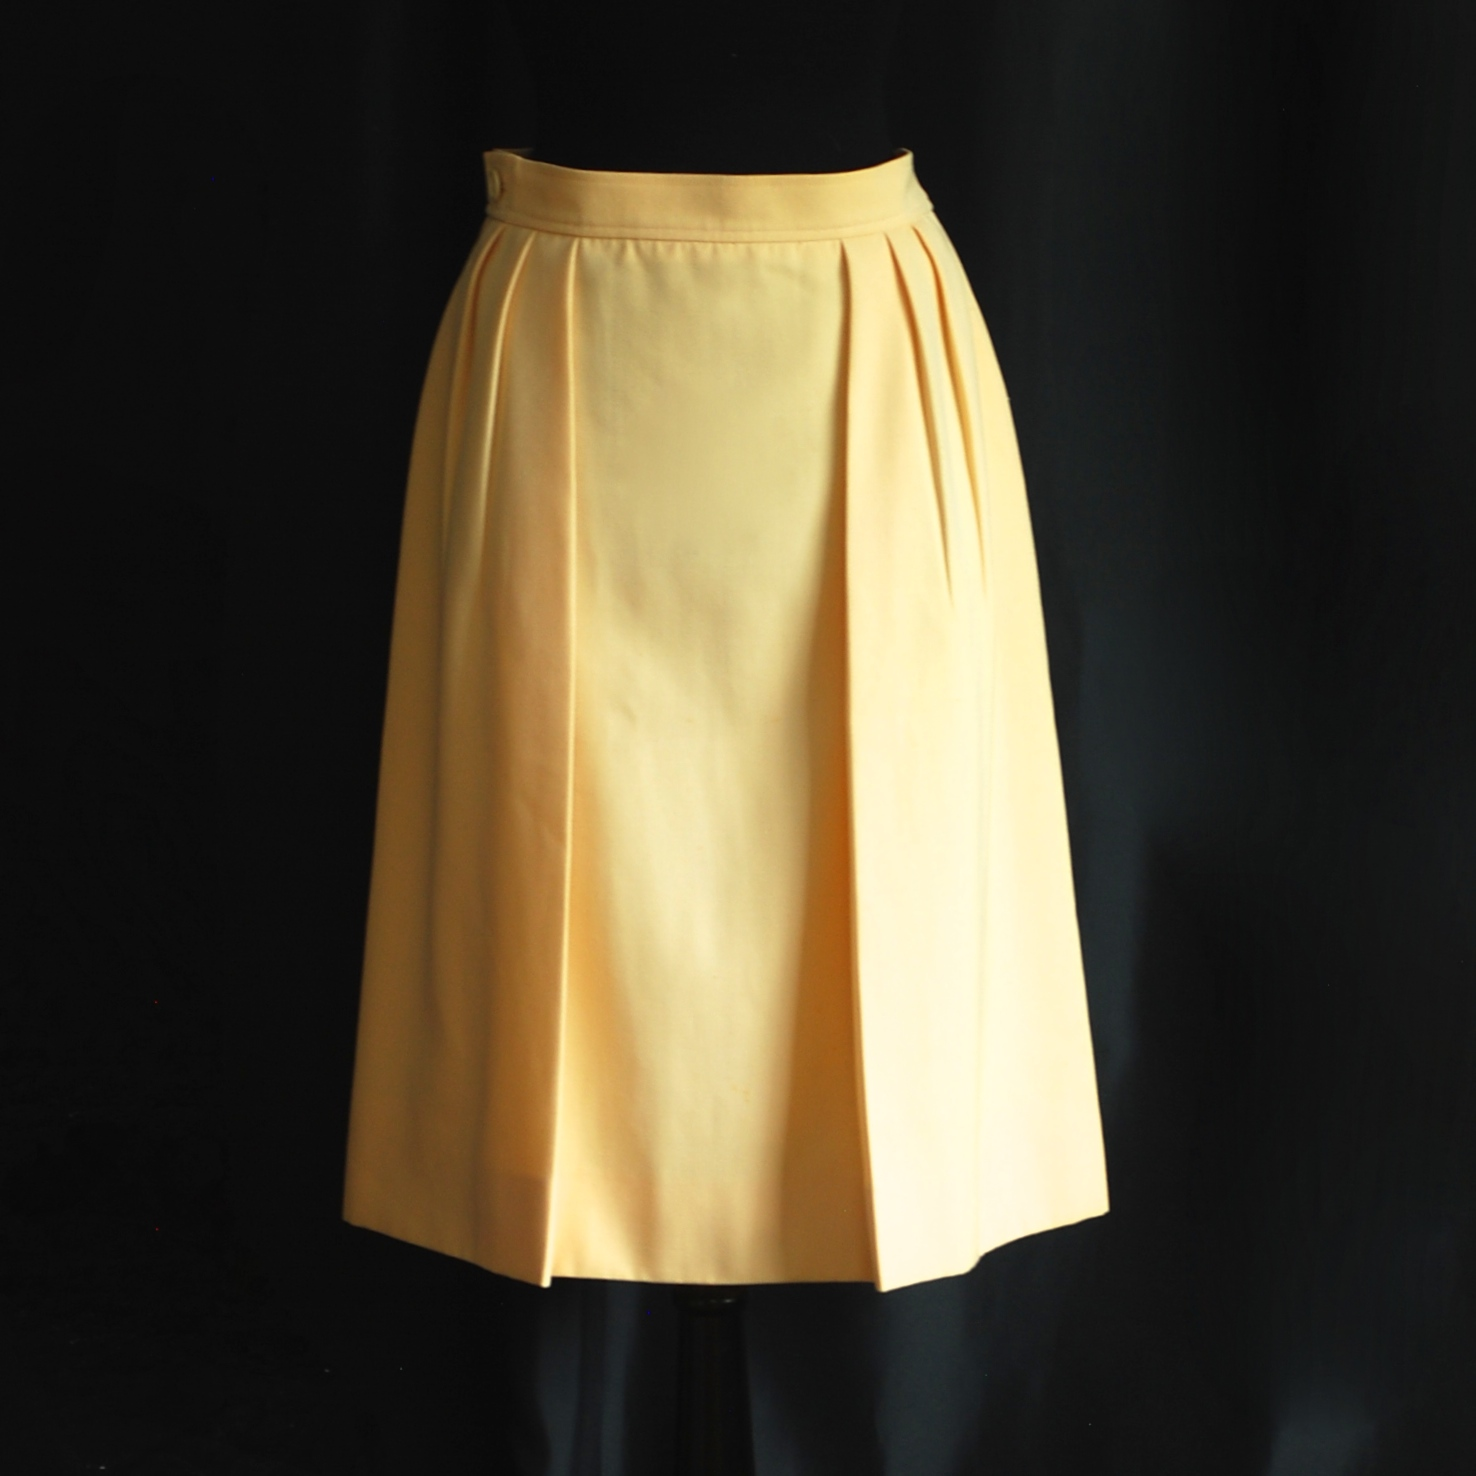 eb61ee4a Yves Saint Laurent Rive Gauche 1970's Pale Yellow Wool Skirt With Pockets –  France